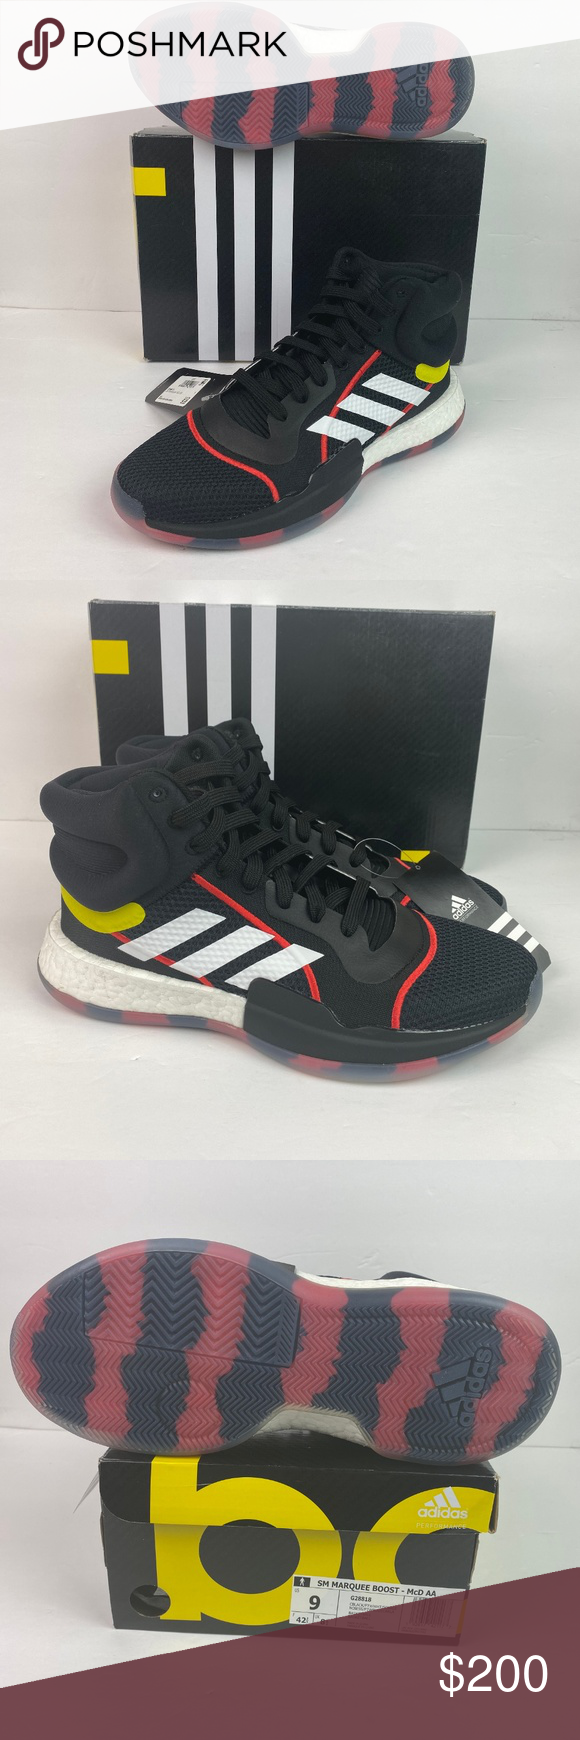 Adidas Marquee Boost - McDonalds AA All American Size 9 These are RARE Player Edition Sneakers Made for the McDonalds All American Game  NEW WITH TAGS   Ships same day or next from my smoke free home.  Offers considered thru the offer button